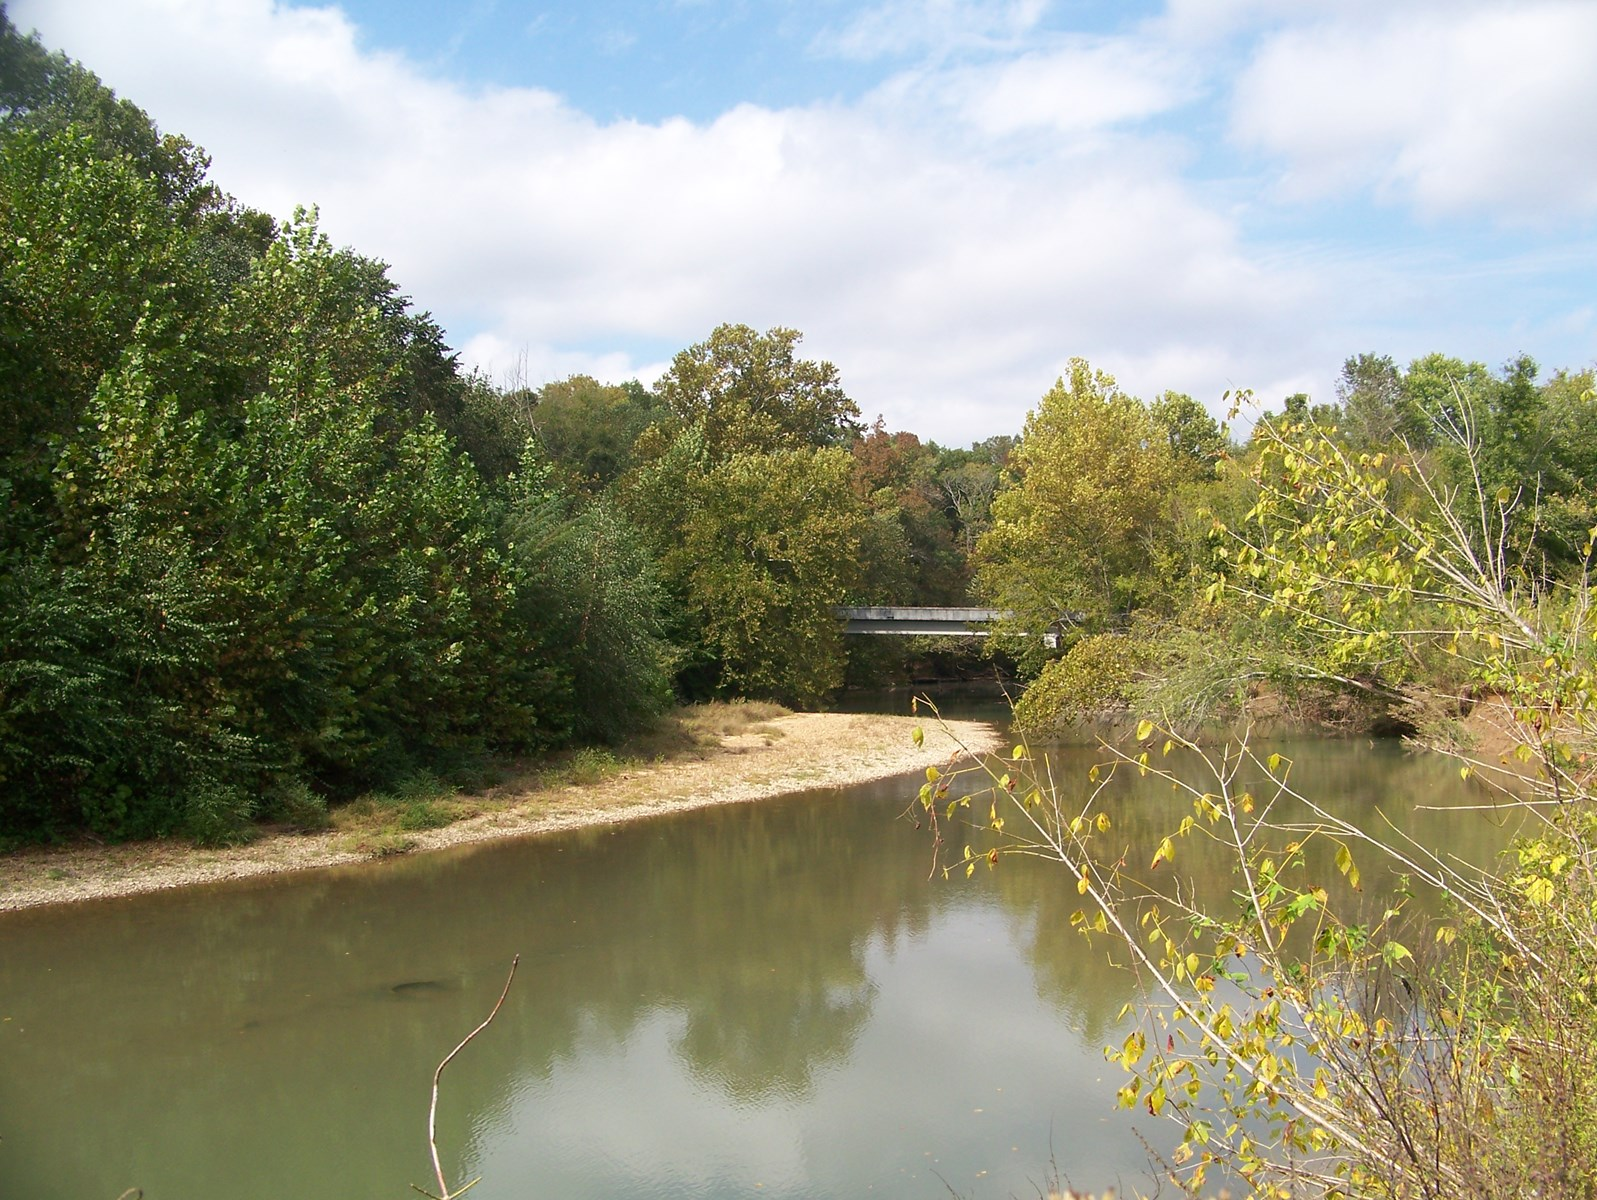 INDIAN CREEK PROPERTY FOR SALE IN HARDIN COUNTY TENNESSEE